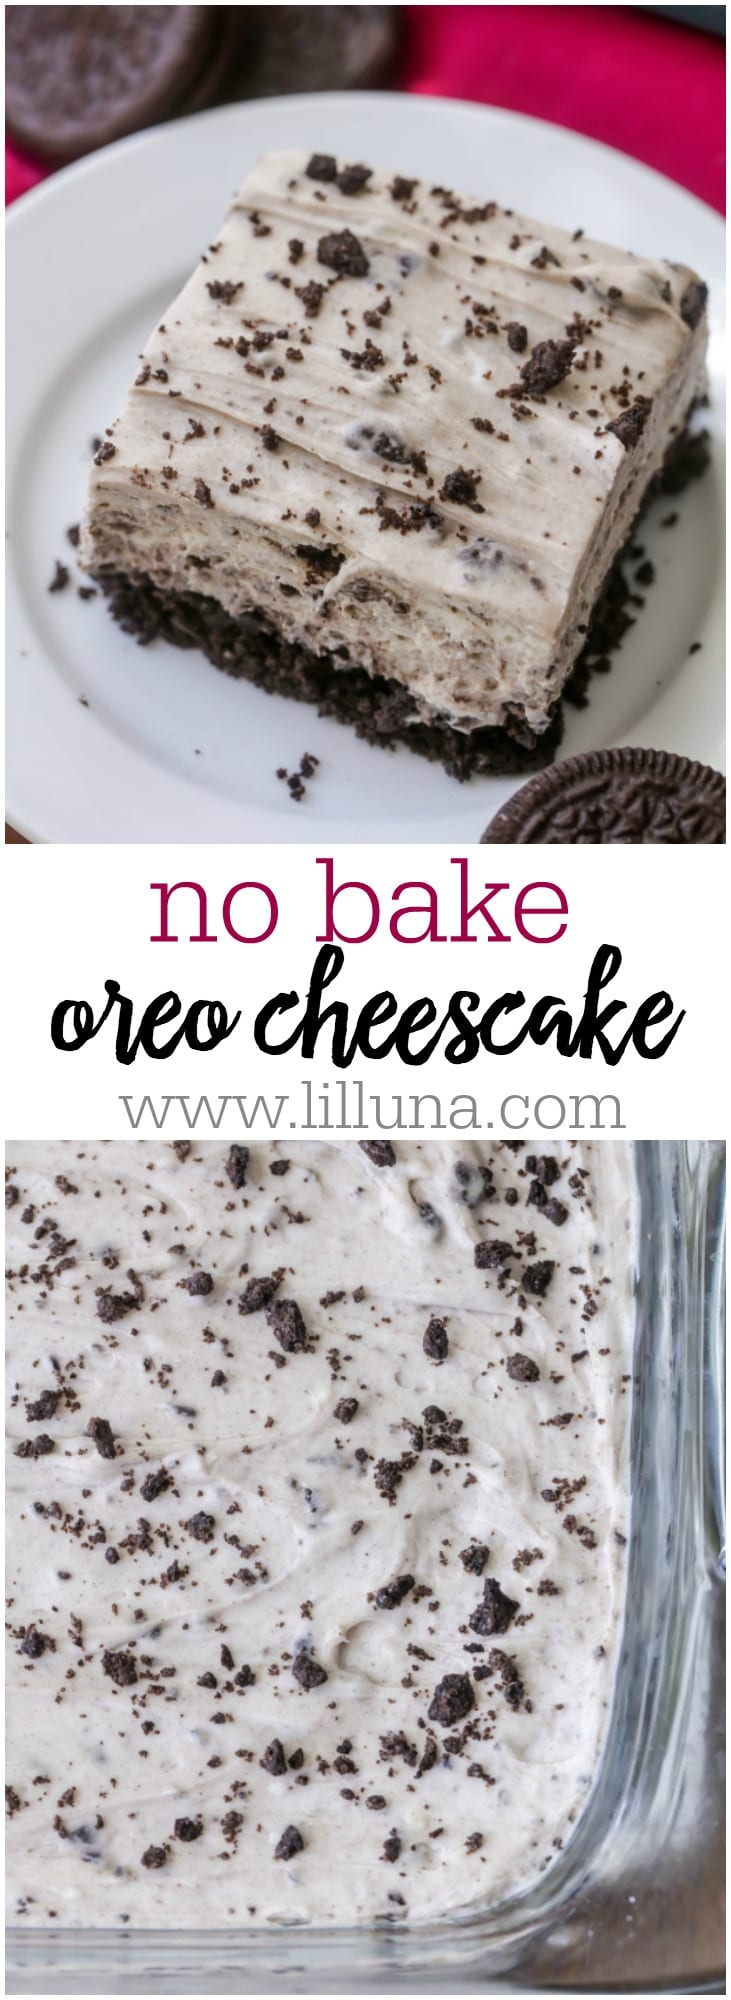 No Bake Oreo Cheesecake A Delicious No Bake Dessert Filled With Everyone S Favorite Cookie